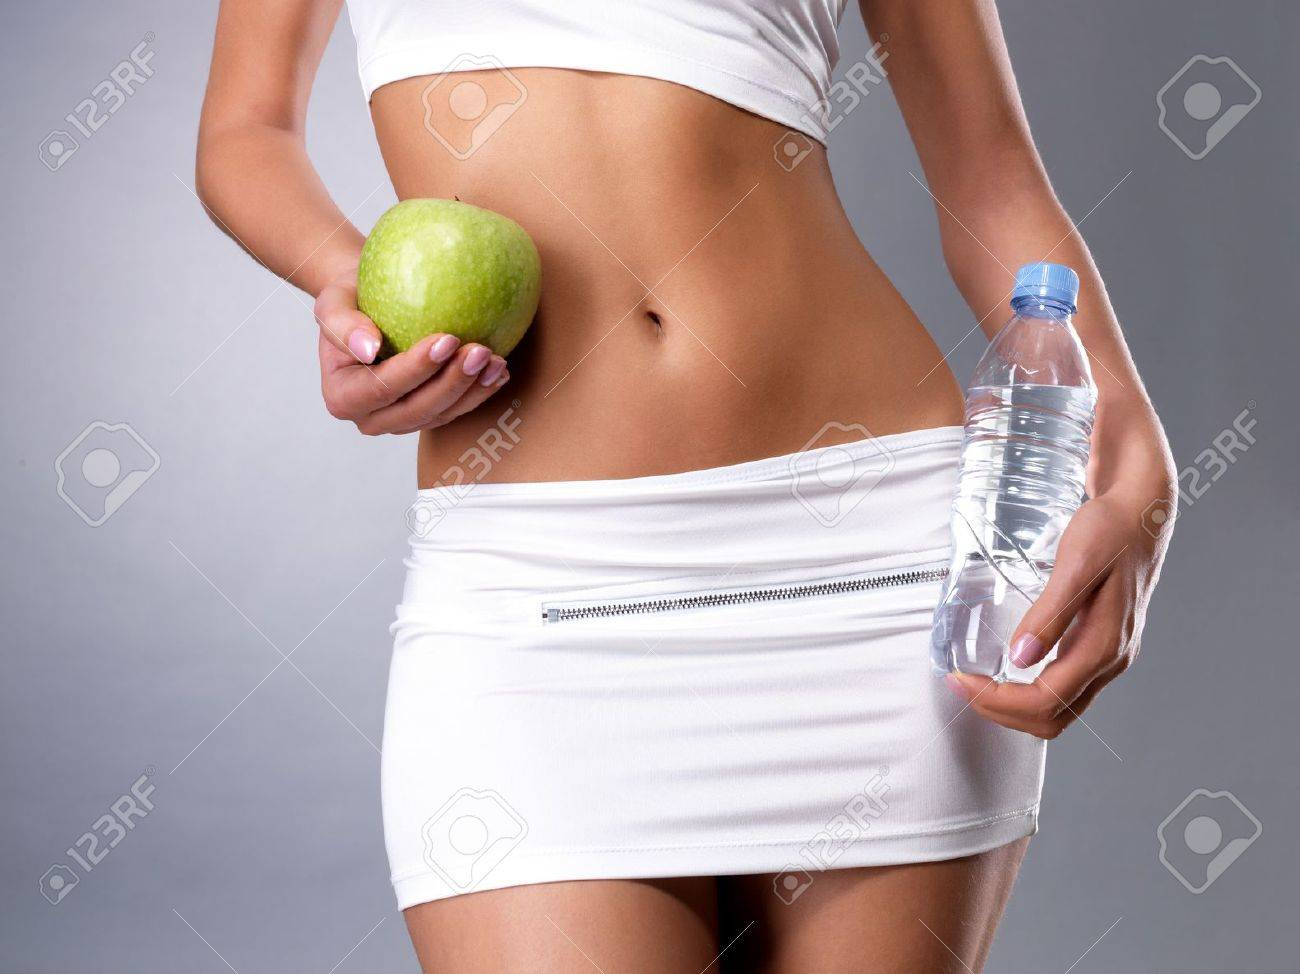 Healthy female body with apple and bottle of water. Healthy fitness and eating lifestyle concept. Stock Photo - 16300954